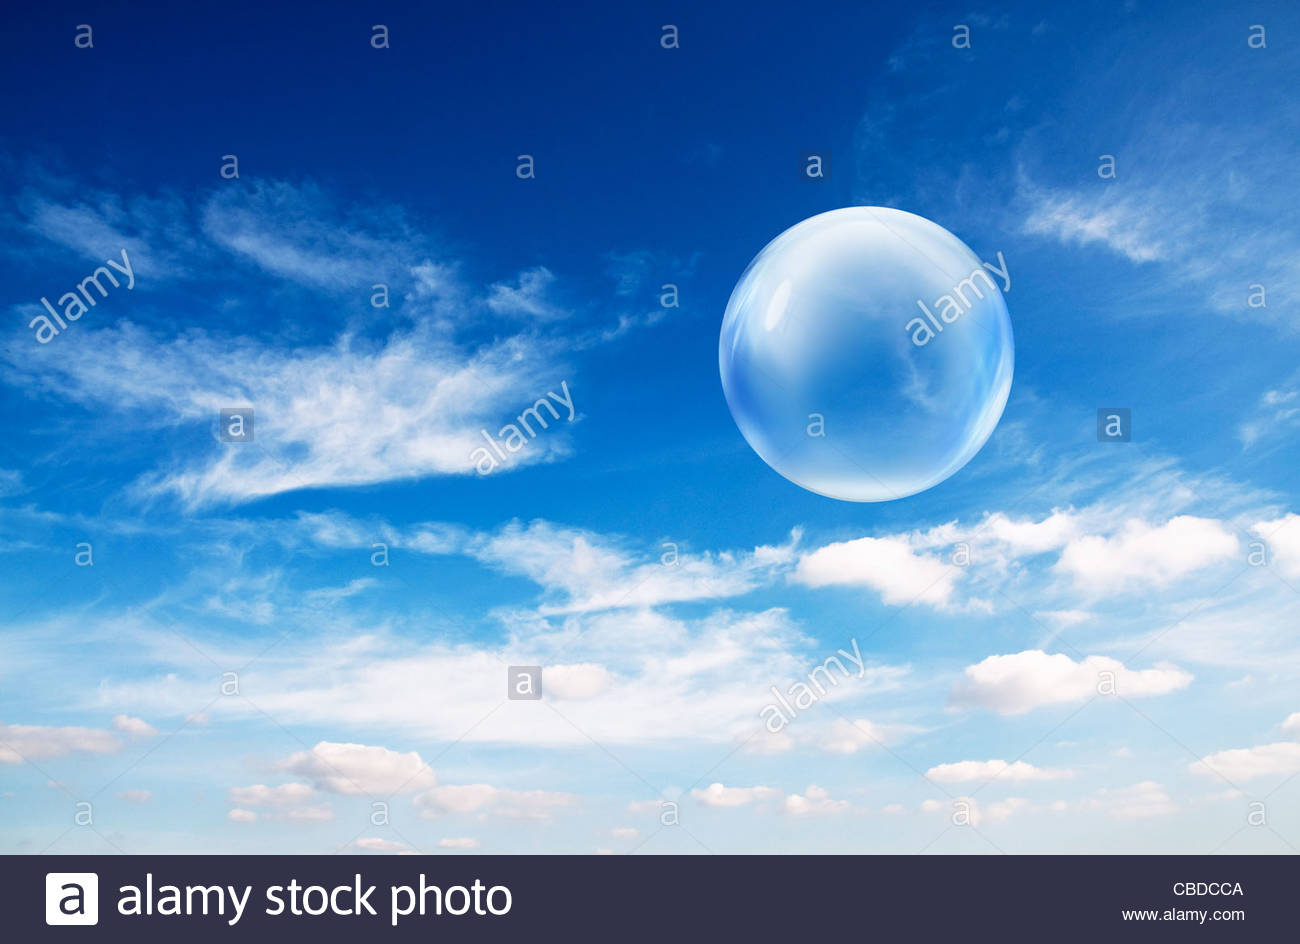 Bubbles in sky - Stock Image